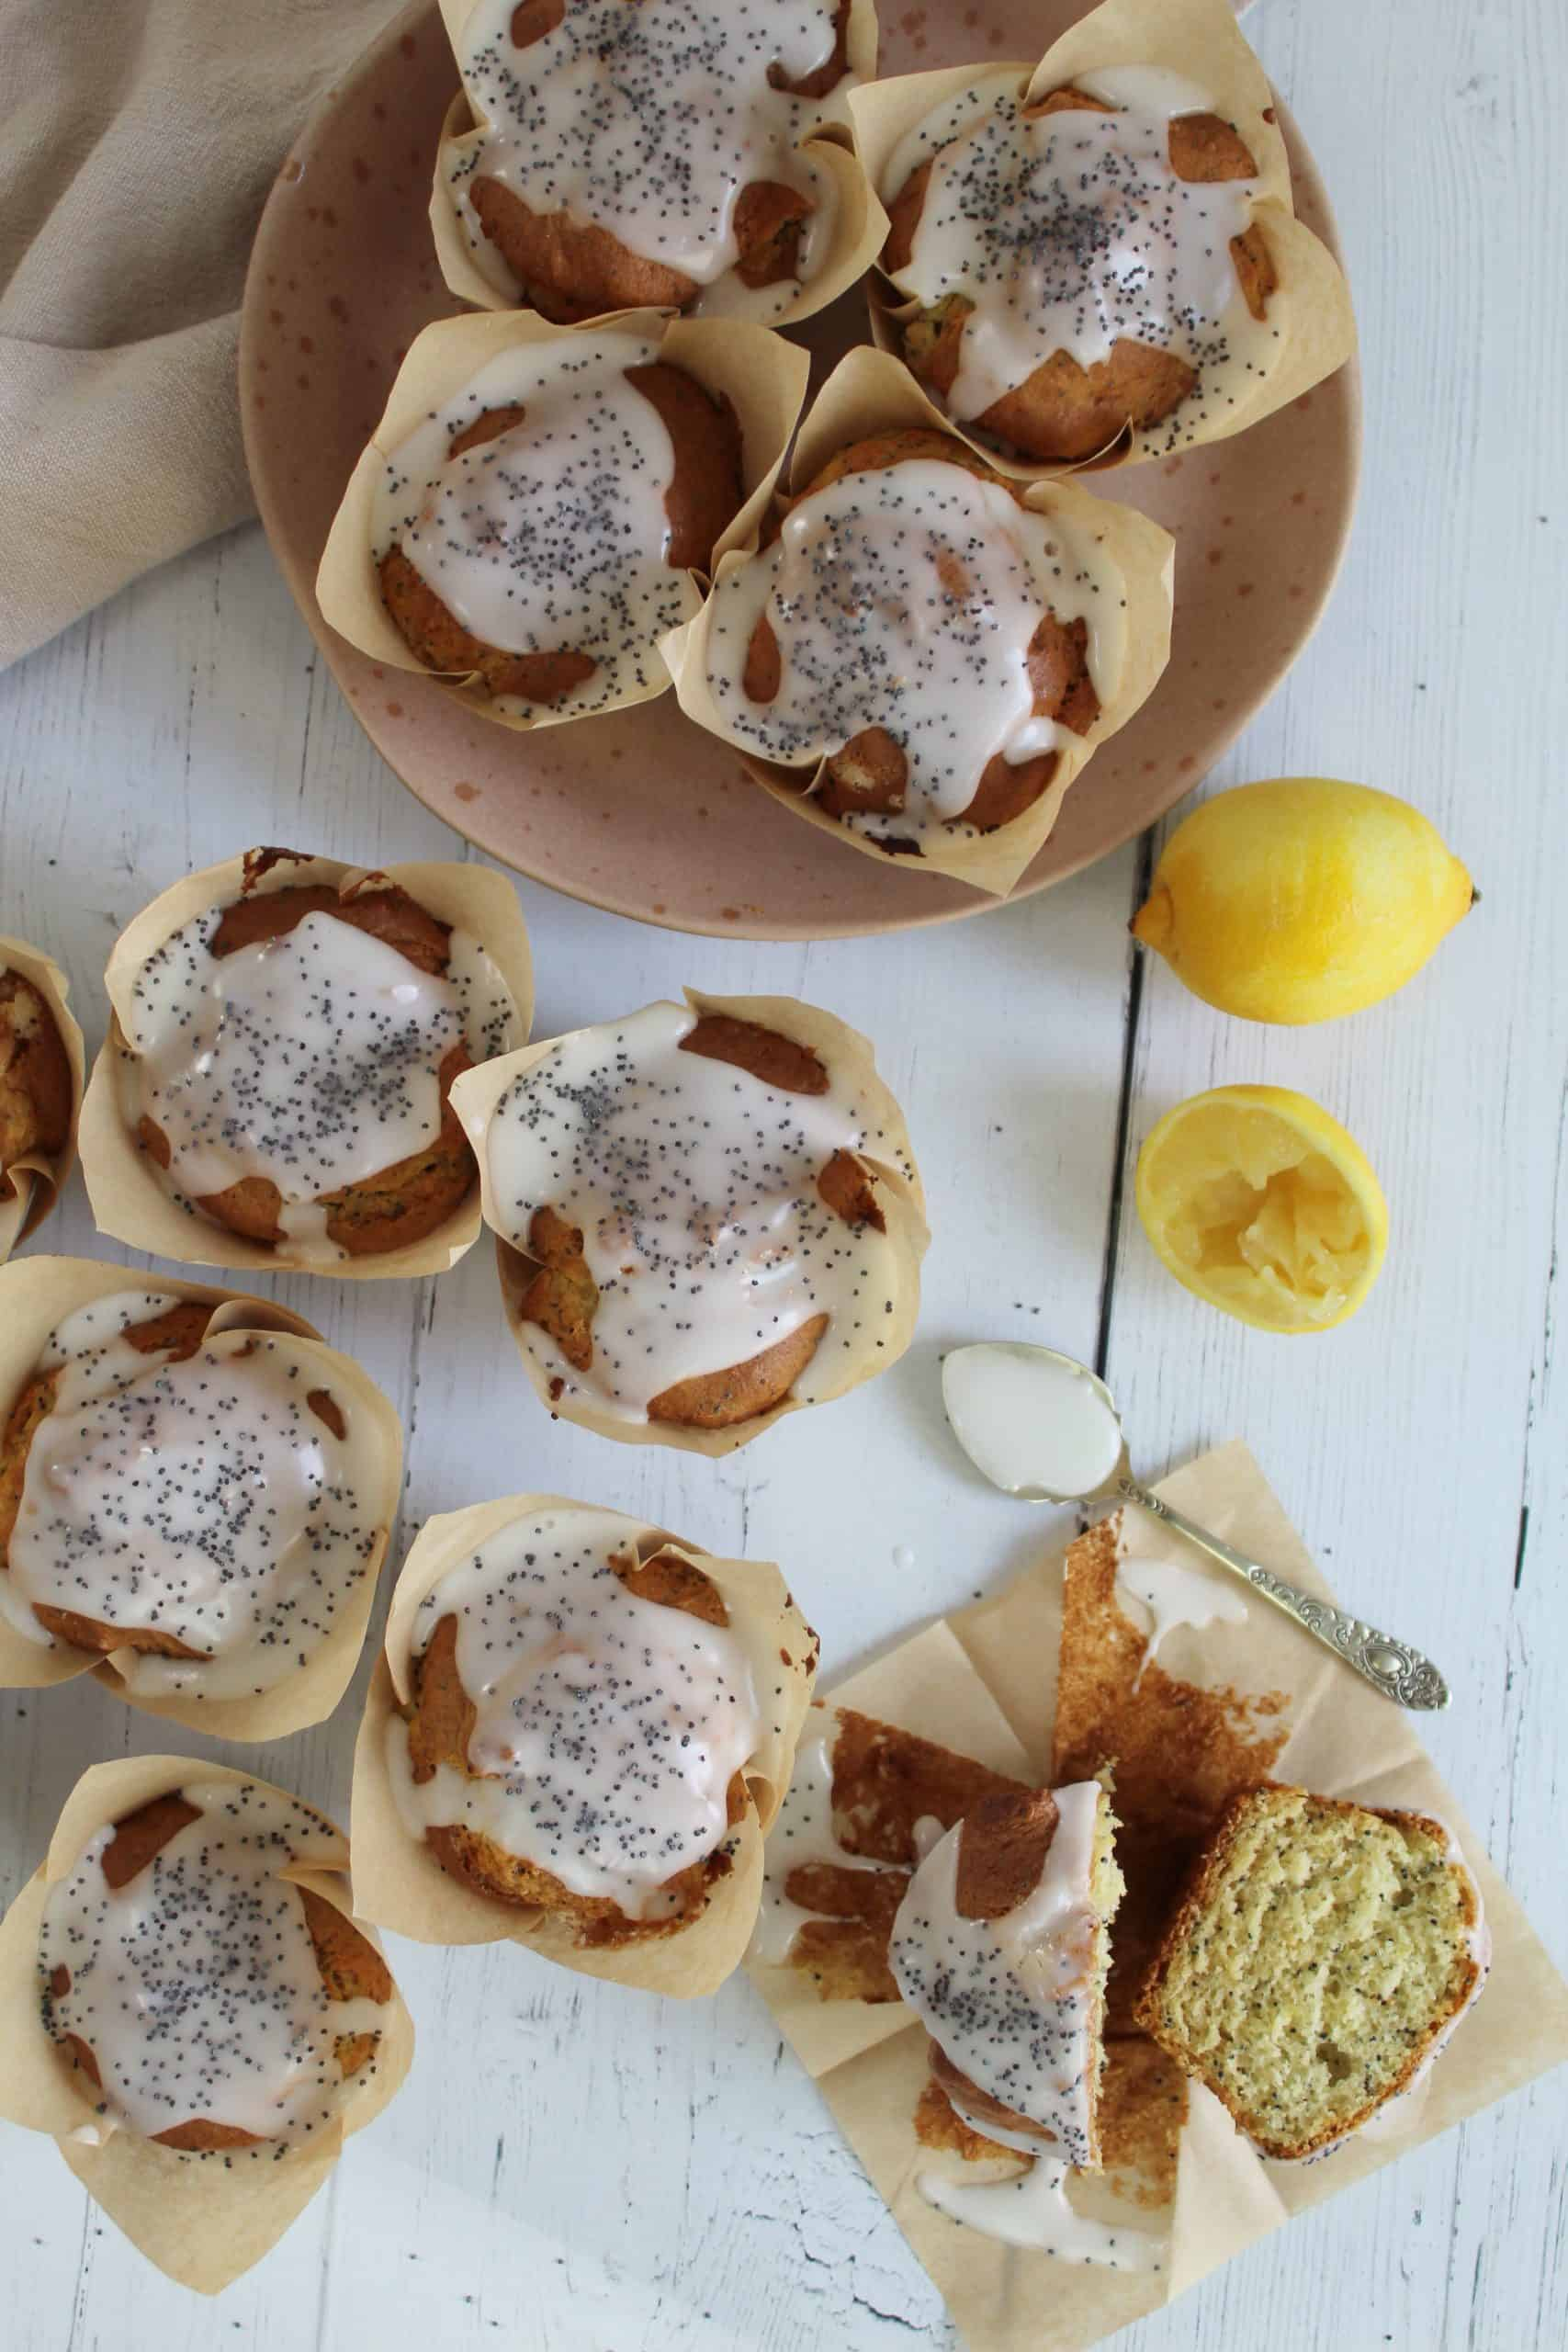 GLUTEN FREE LEMON AND POPPYSEED MUFFINS 26